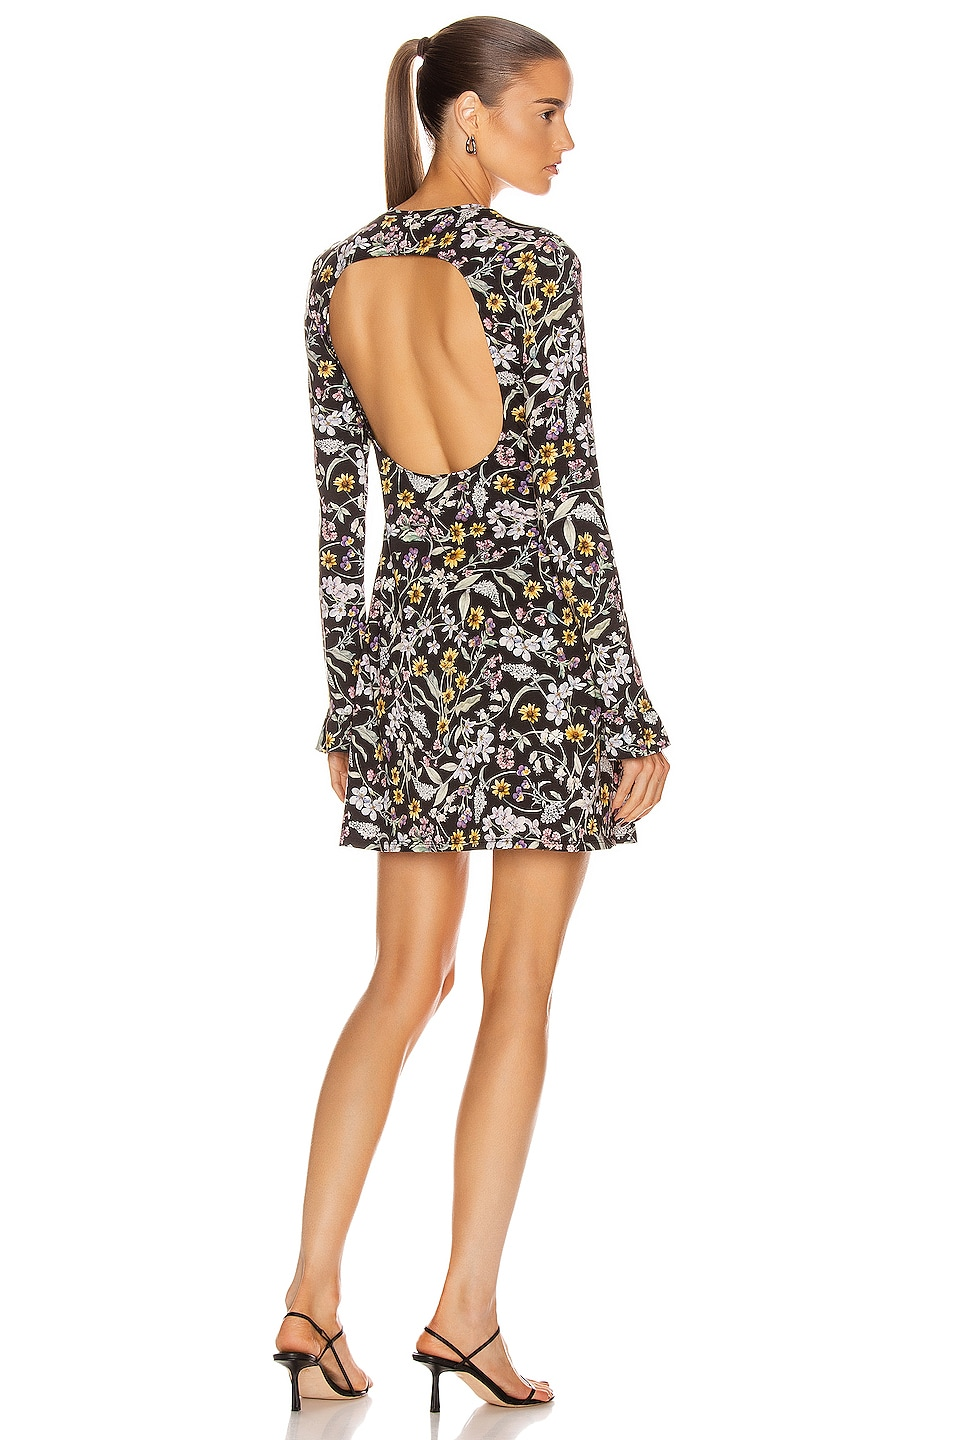 Image 1 of Les Reveries Open Back Long Sleeve Mini Dress in Liberty Floral Black